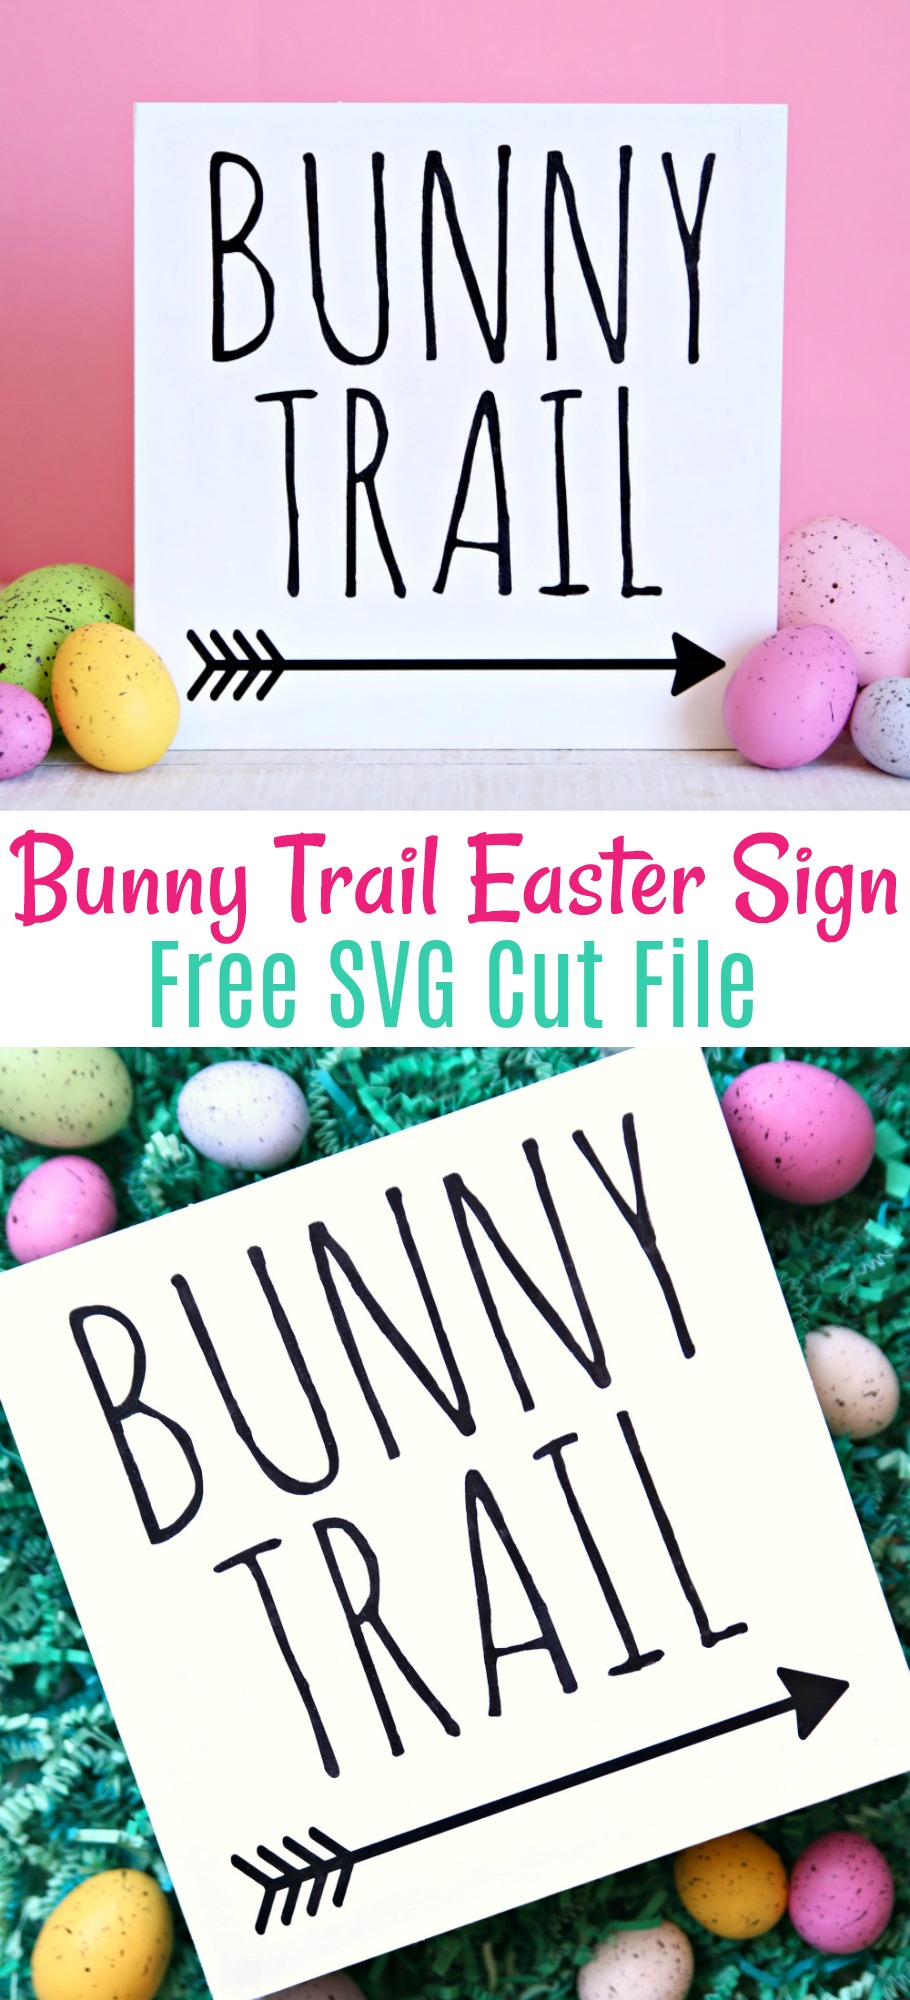 Bunny Trail Easter Sign Free SVG Cut File